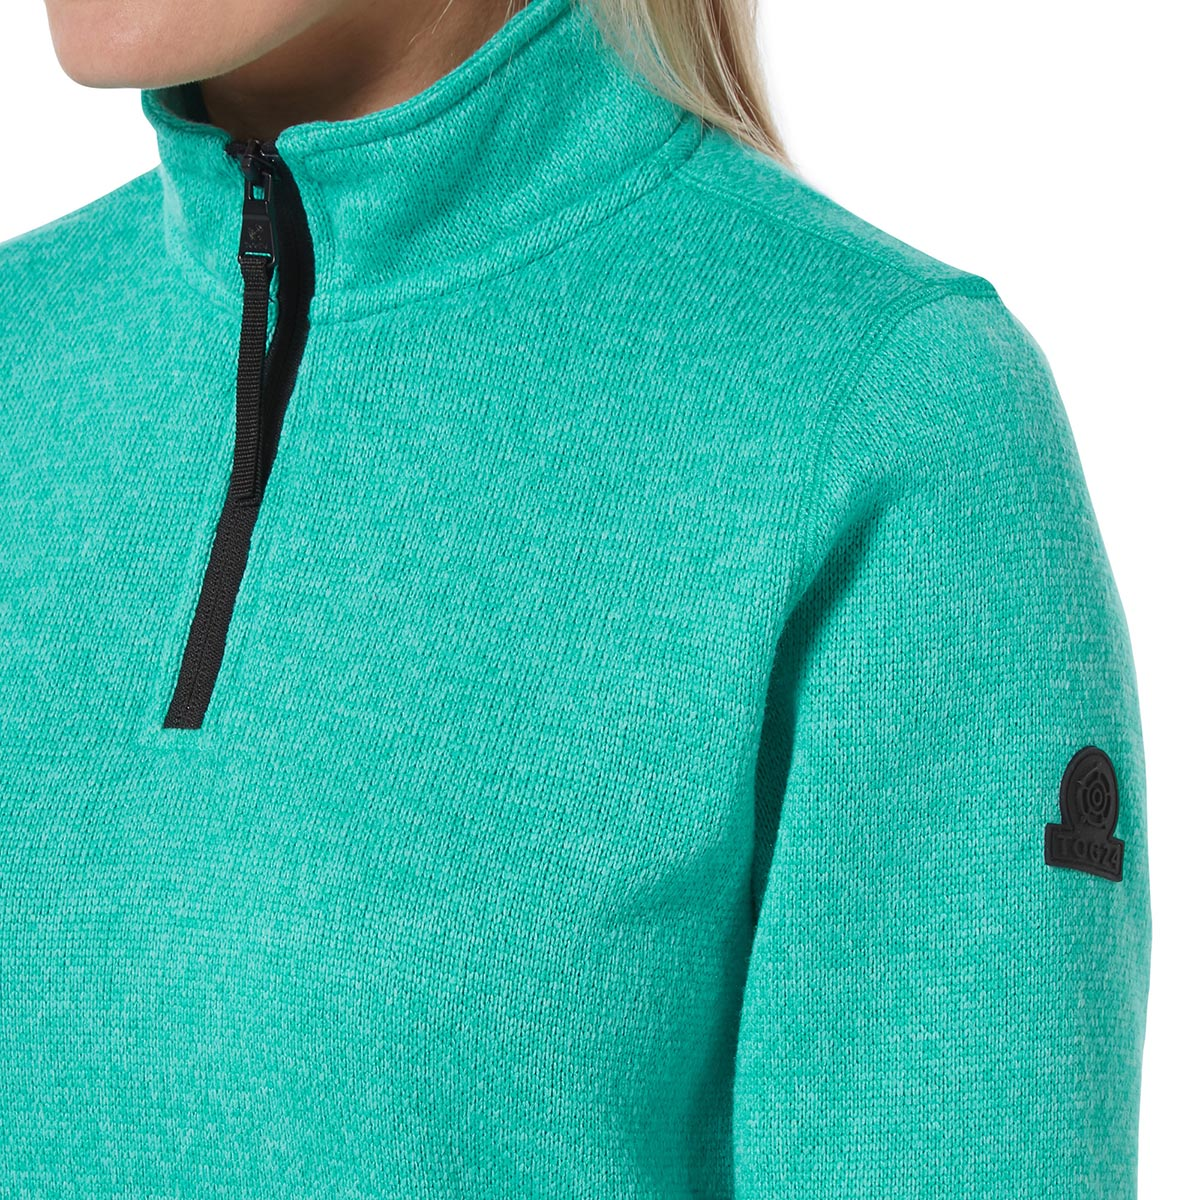 Monza Womens Knitlook Fleece Zip Neck - Ceramic Blue image 4